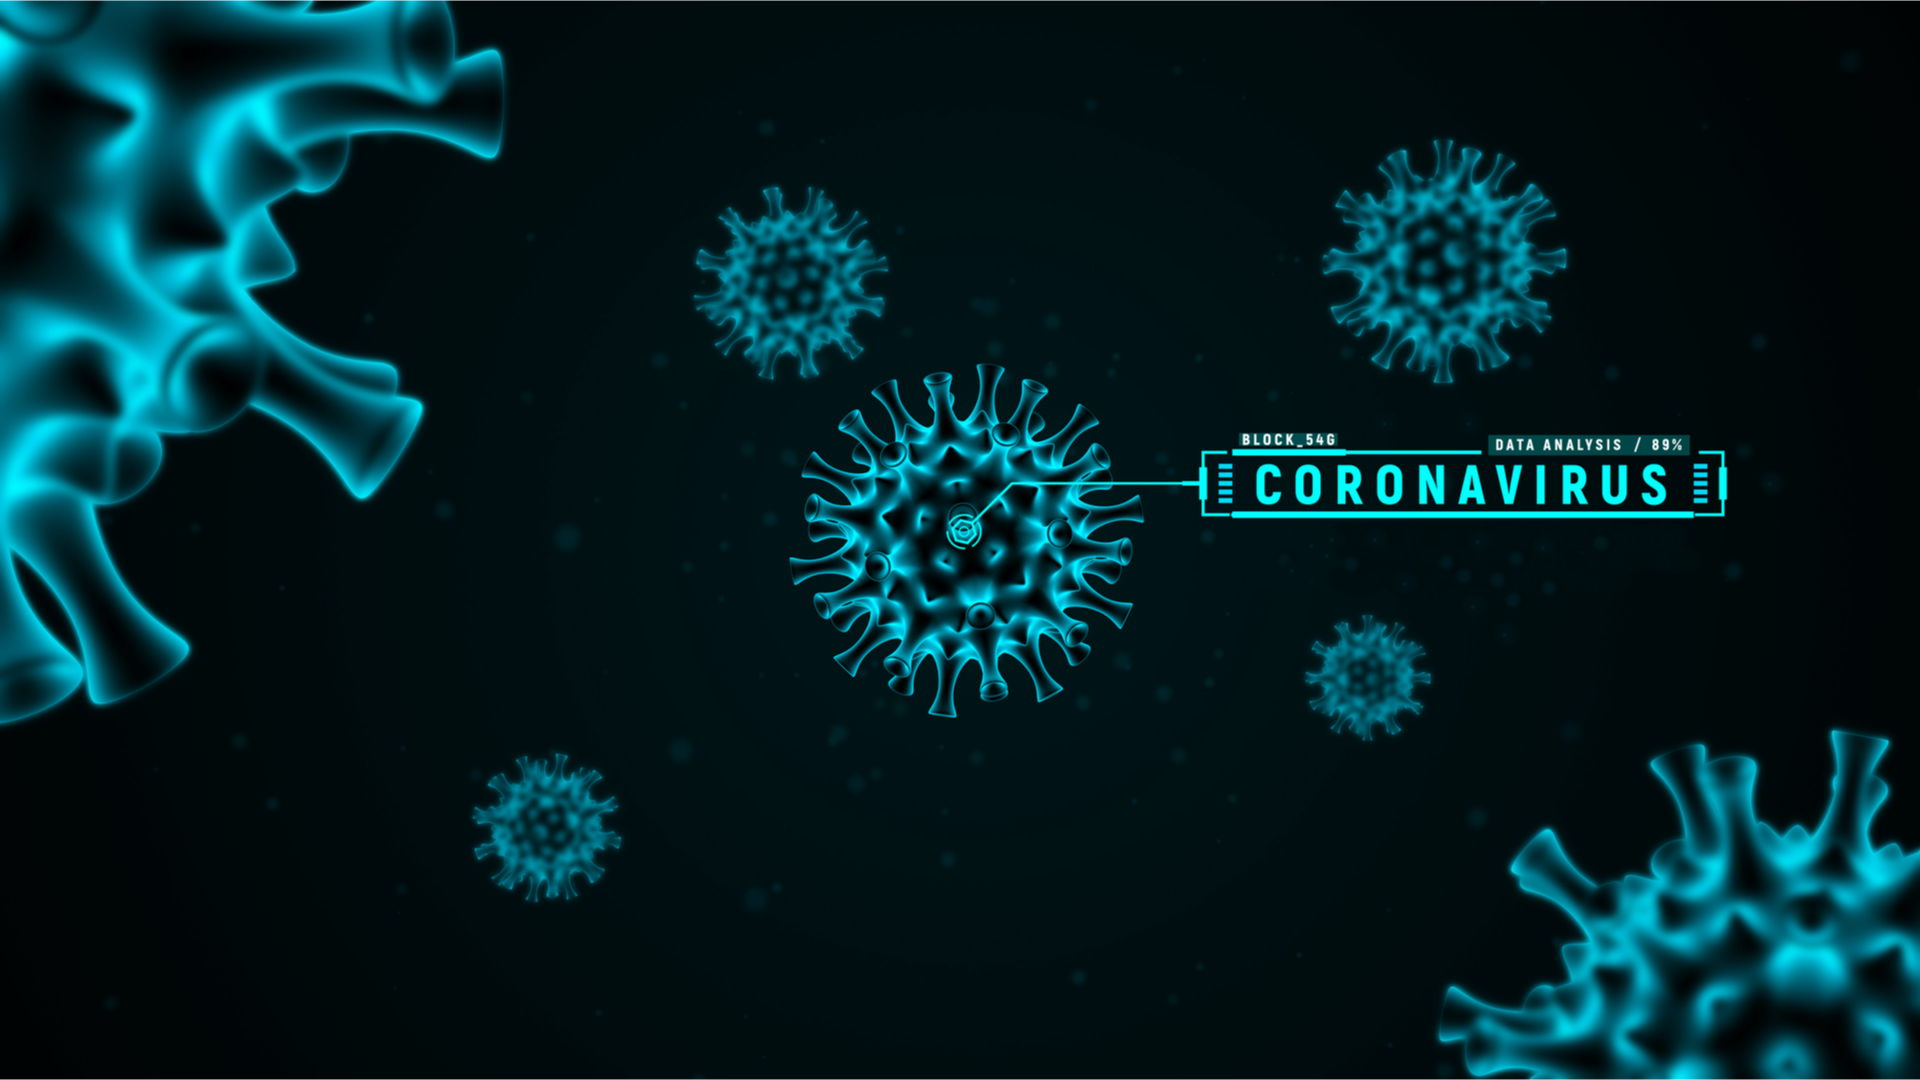 L&E GLOBAL: CORONAVIRUS IN A FLASH